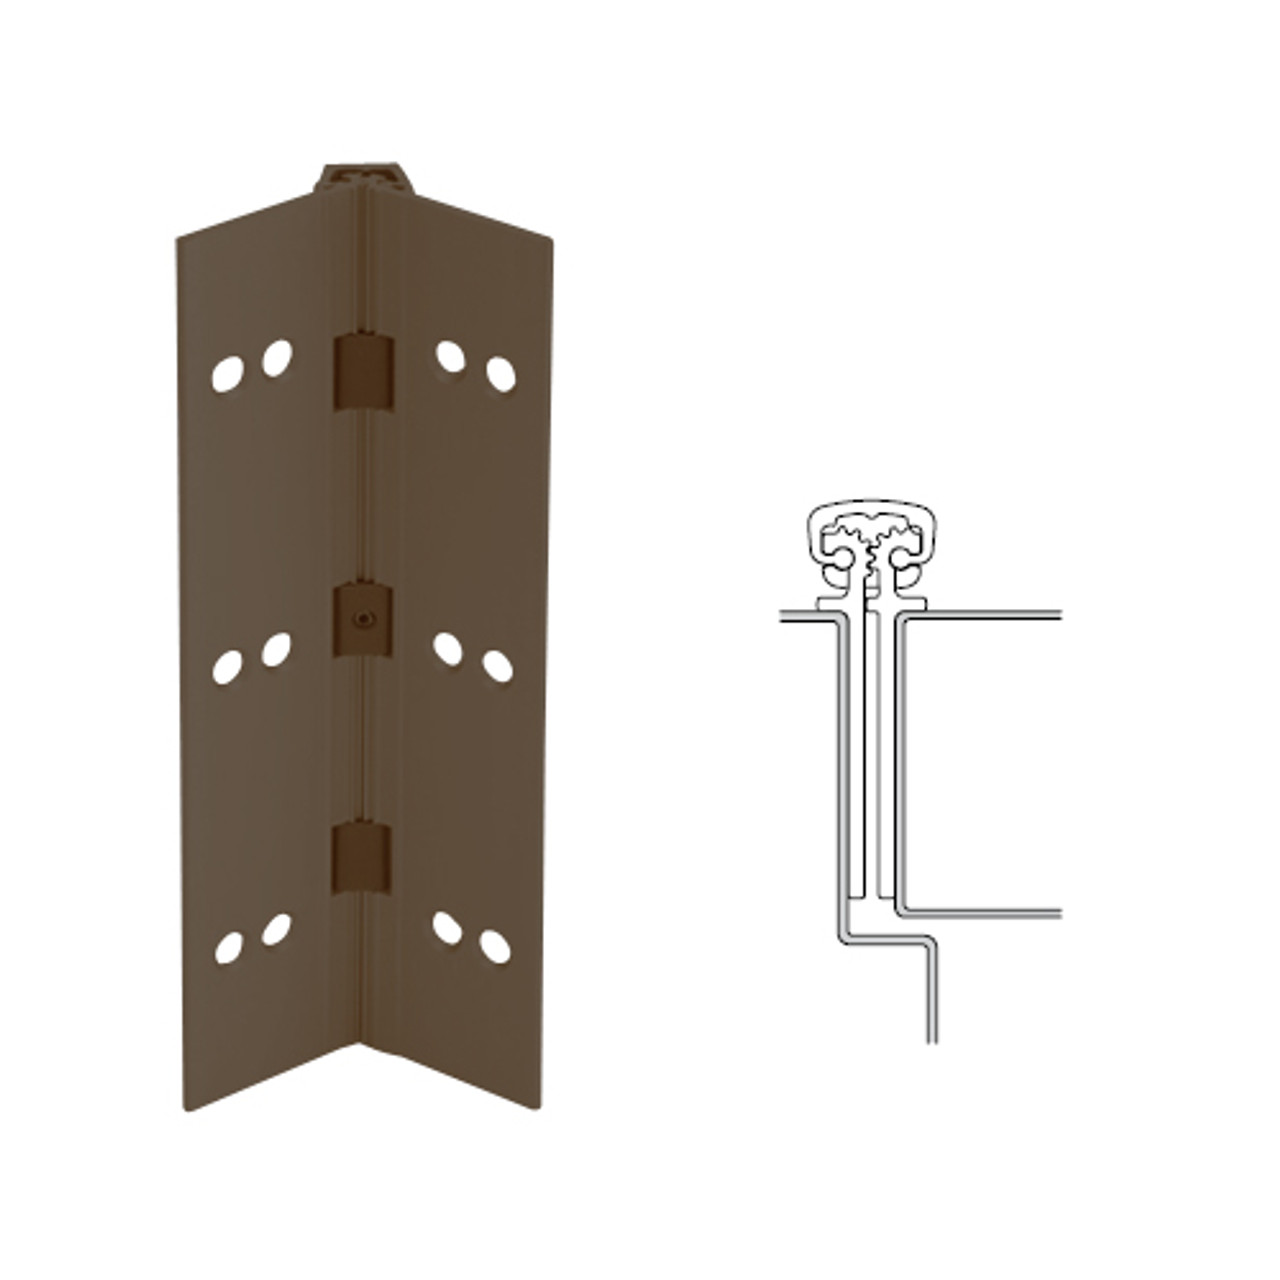 027XY-313AN-95-HT IVES Full Mortise Continuous Geared Hinges with Hospital Tip in Dark Bronze Anodized